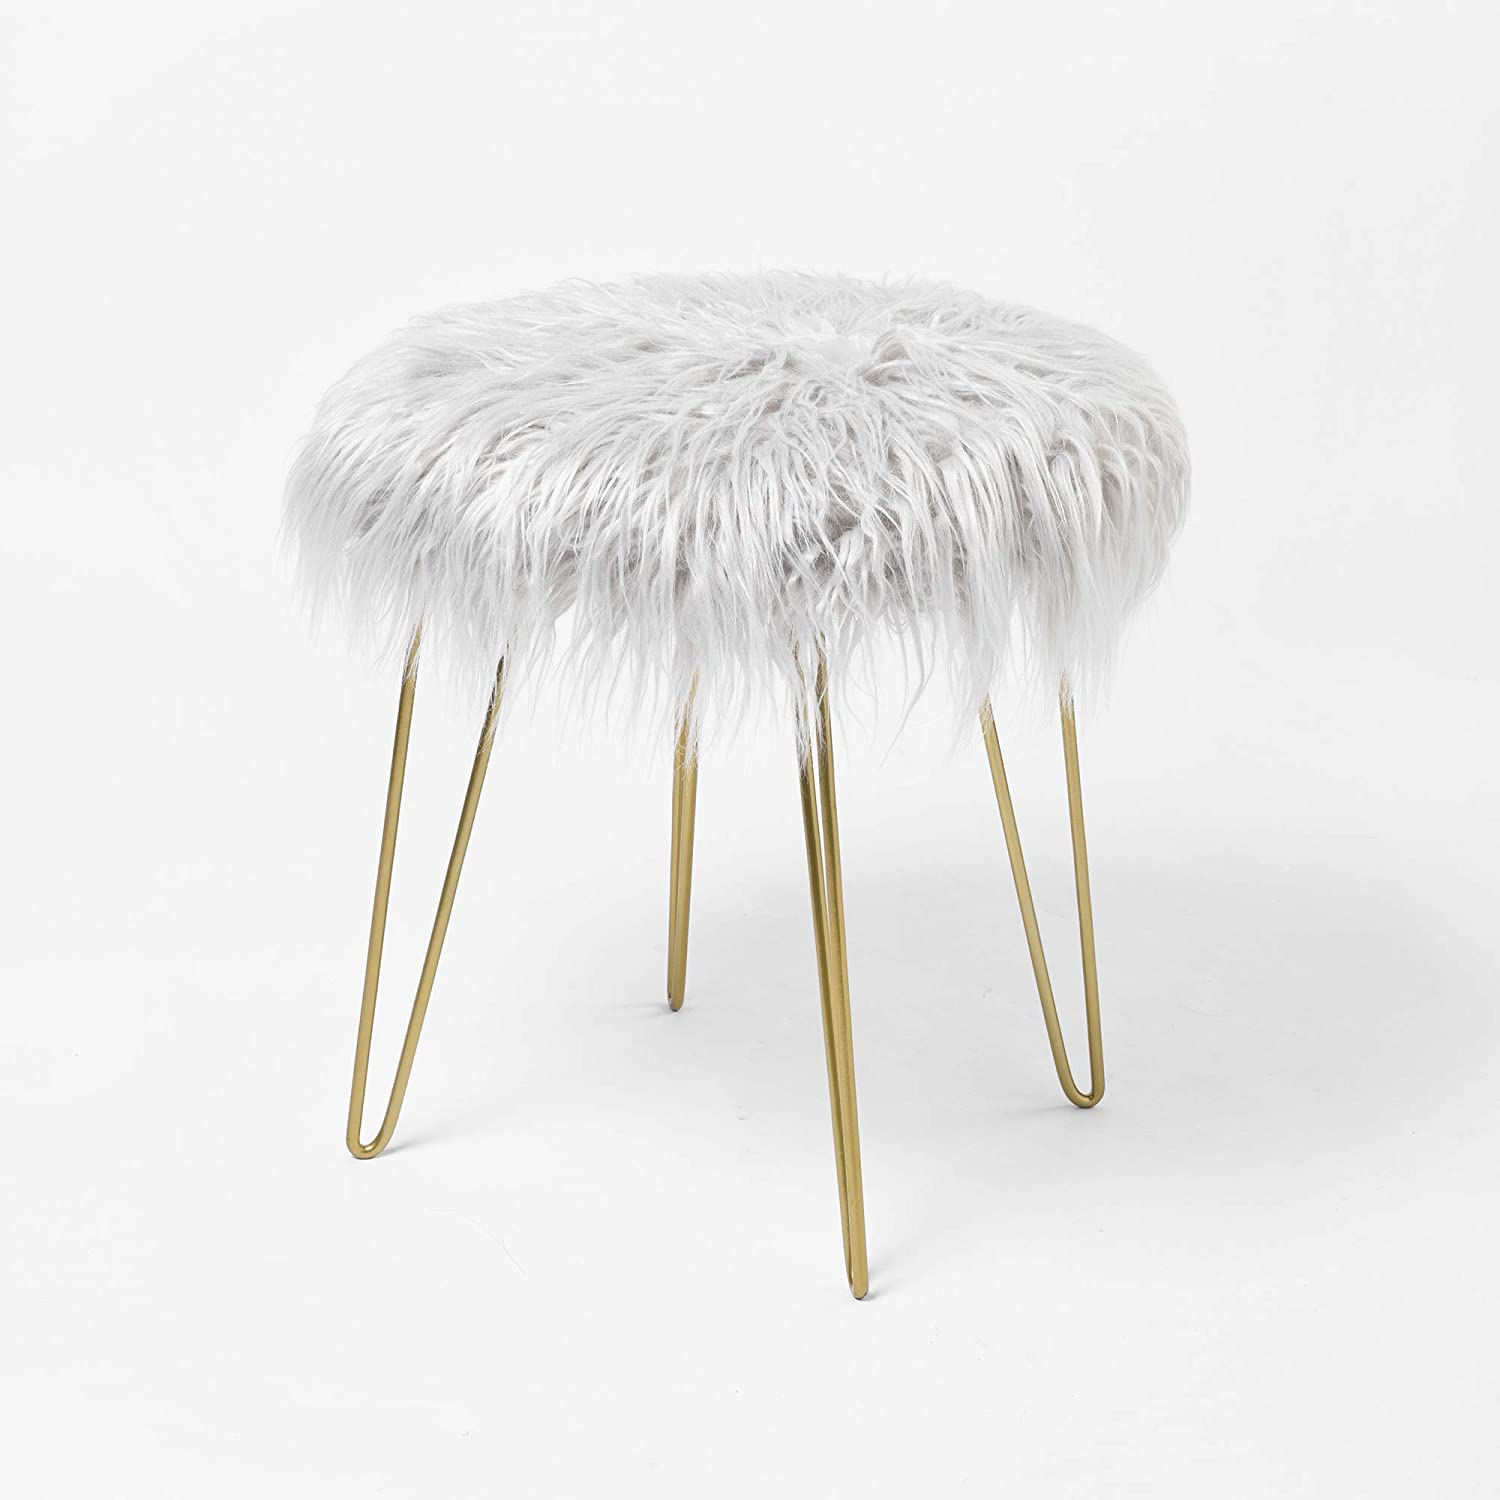 Fuzzy Fluzzy Fur Vanity Stool Seat Ottoman Foot Rest Round Cute For Bedroom With Gold Metal Legs Buy Dressing Table Chair Fluffy Makeup Product On Alibaba Com